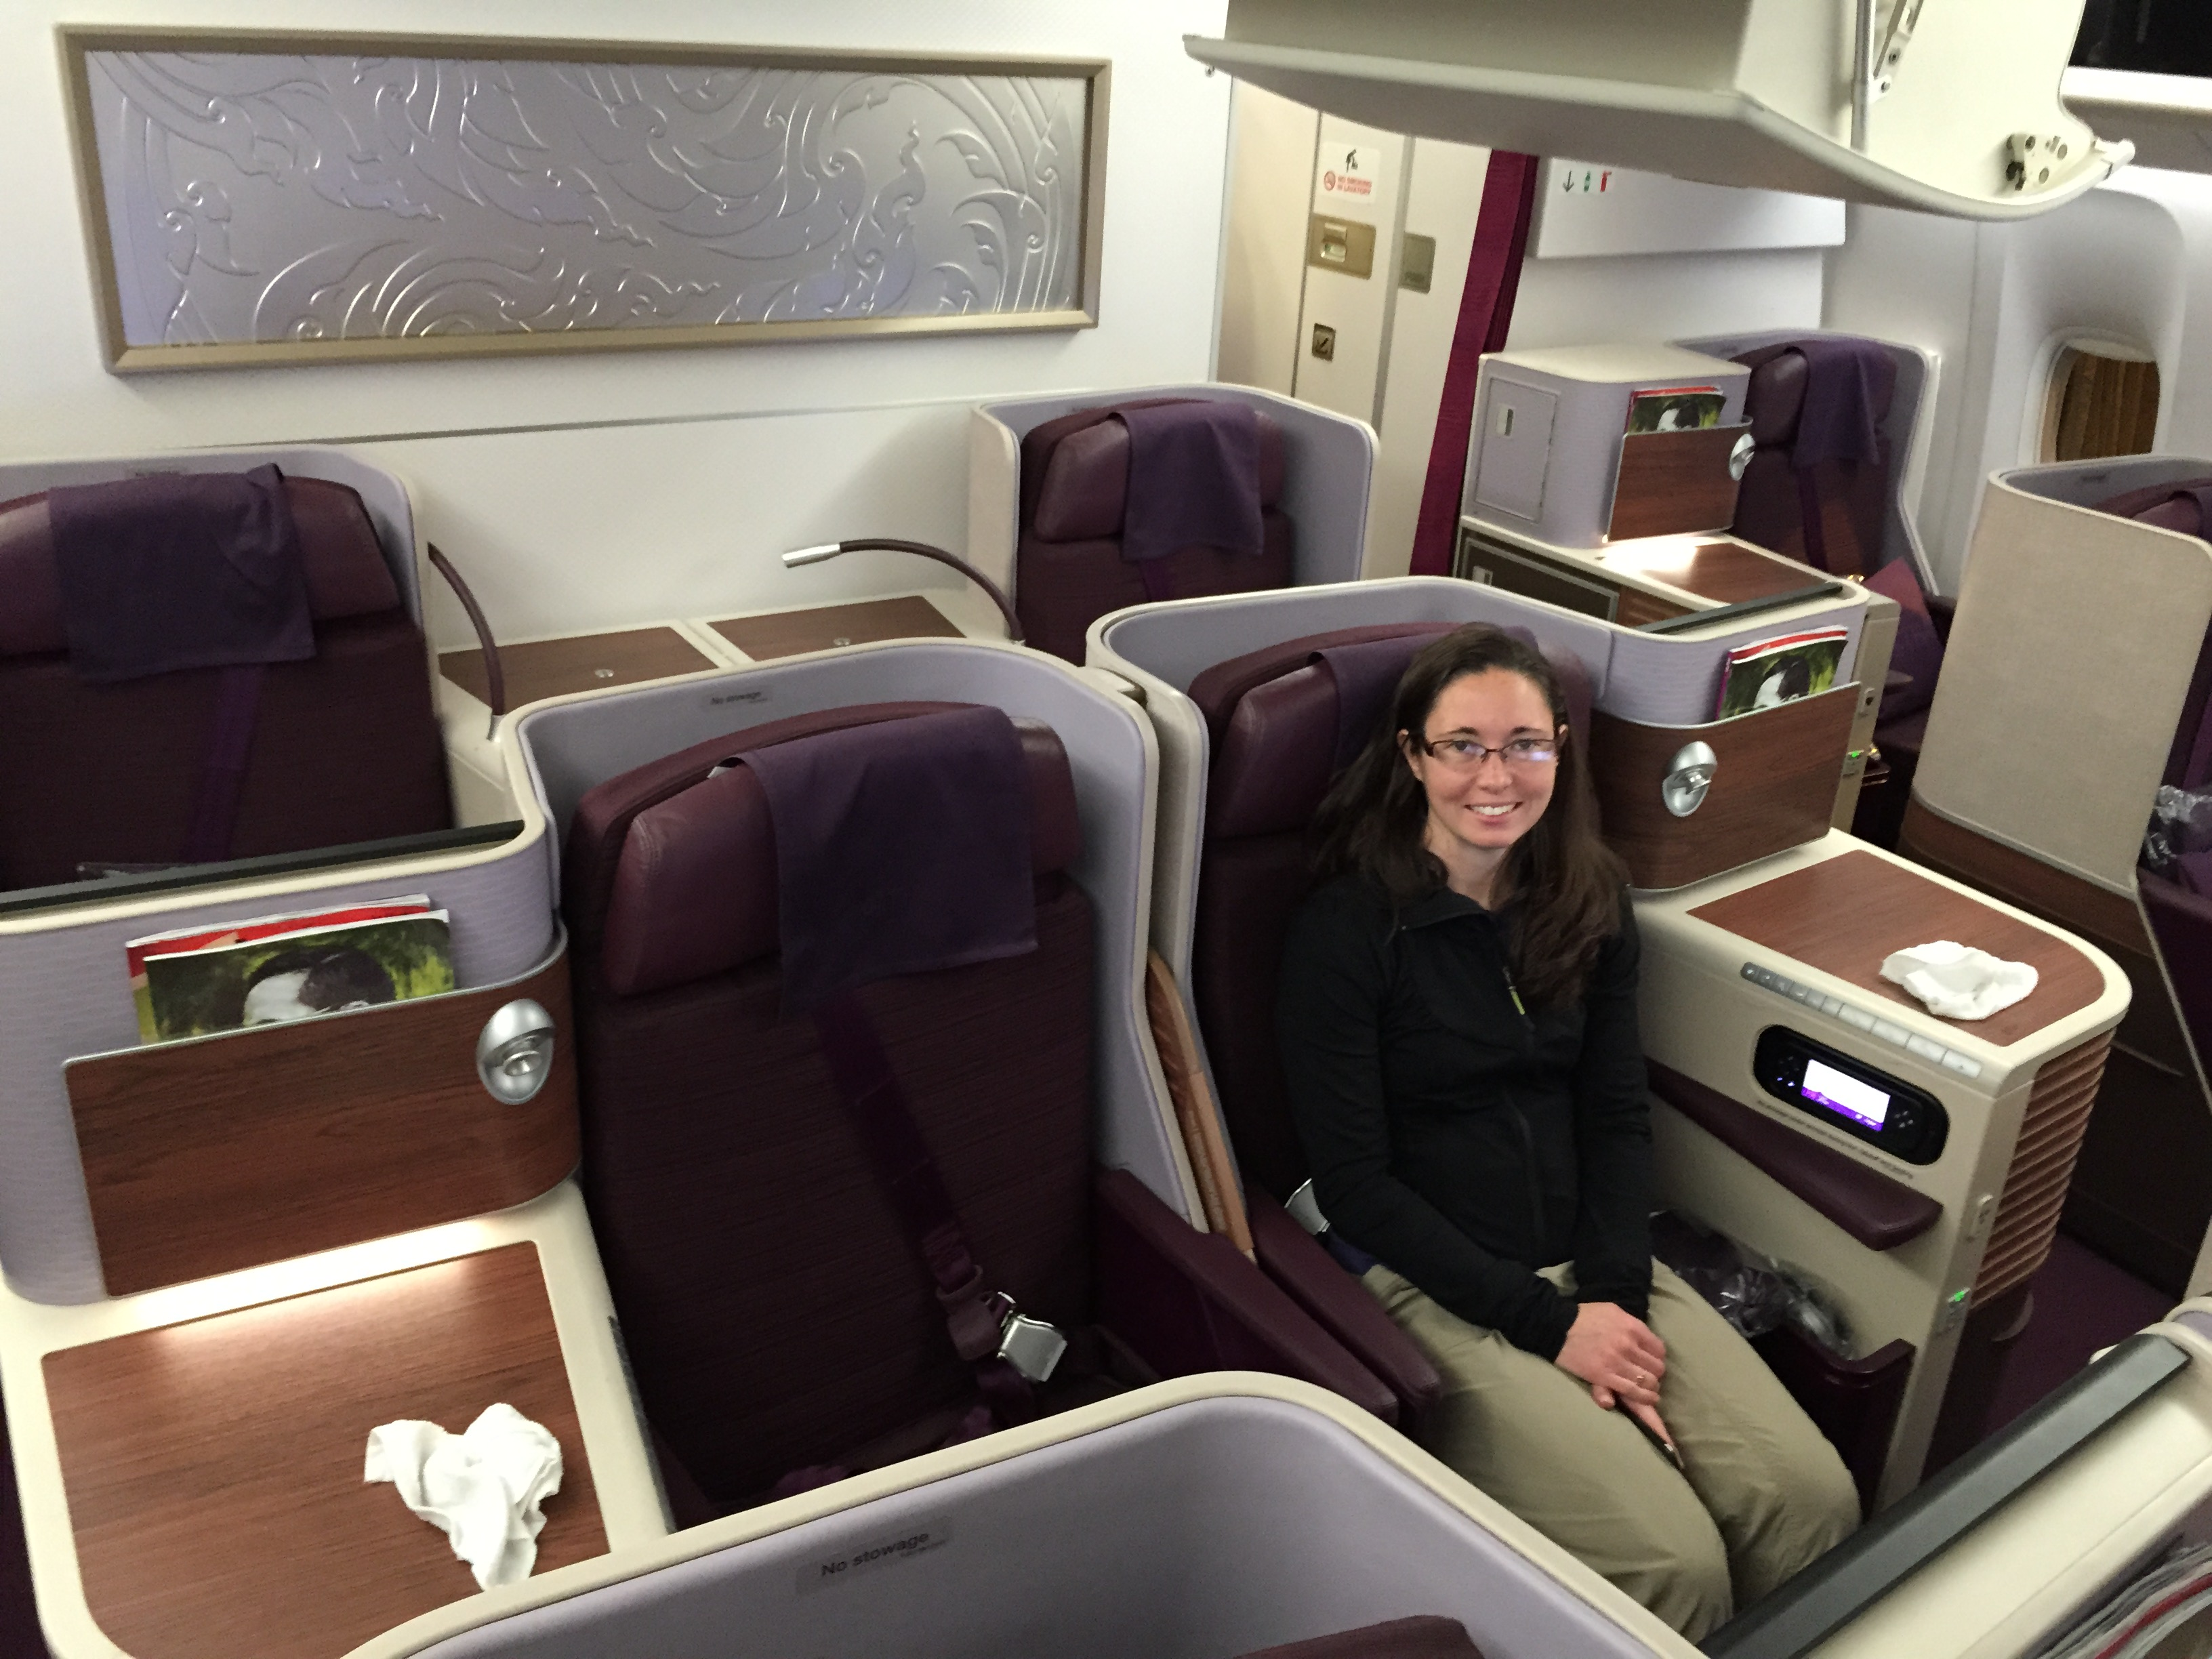 Adult female with long dark hair and glasses sitting in business class section of an airplane.